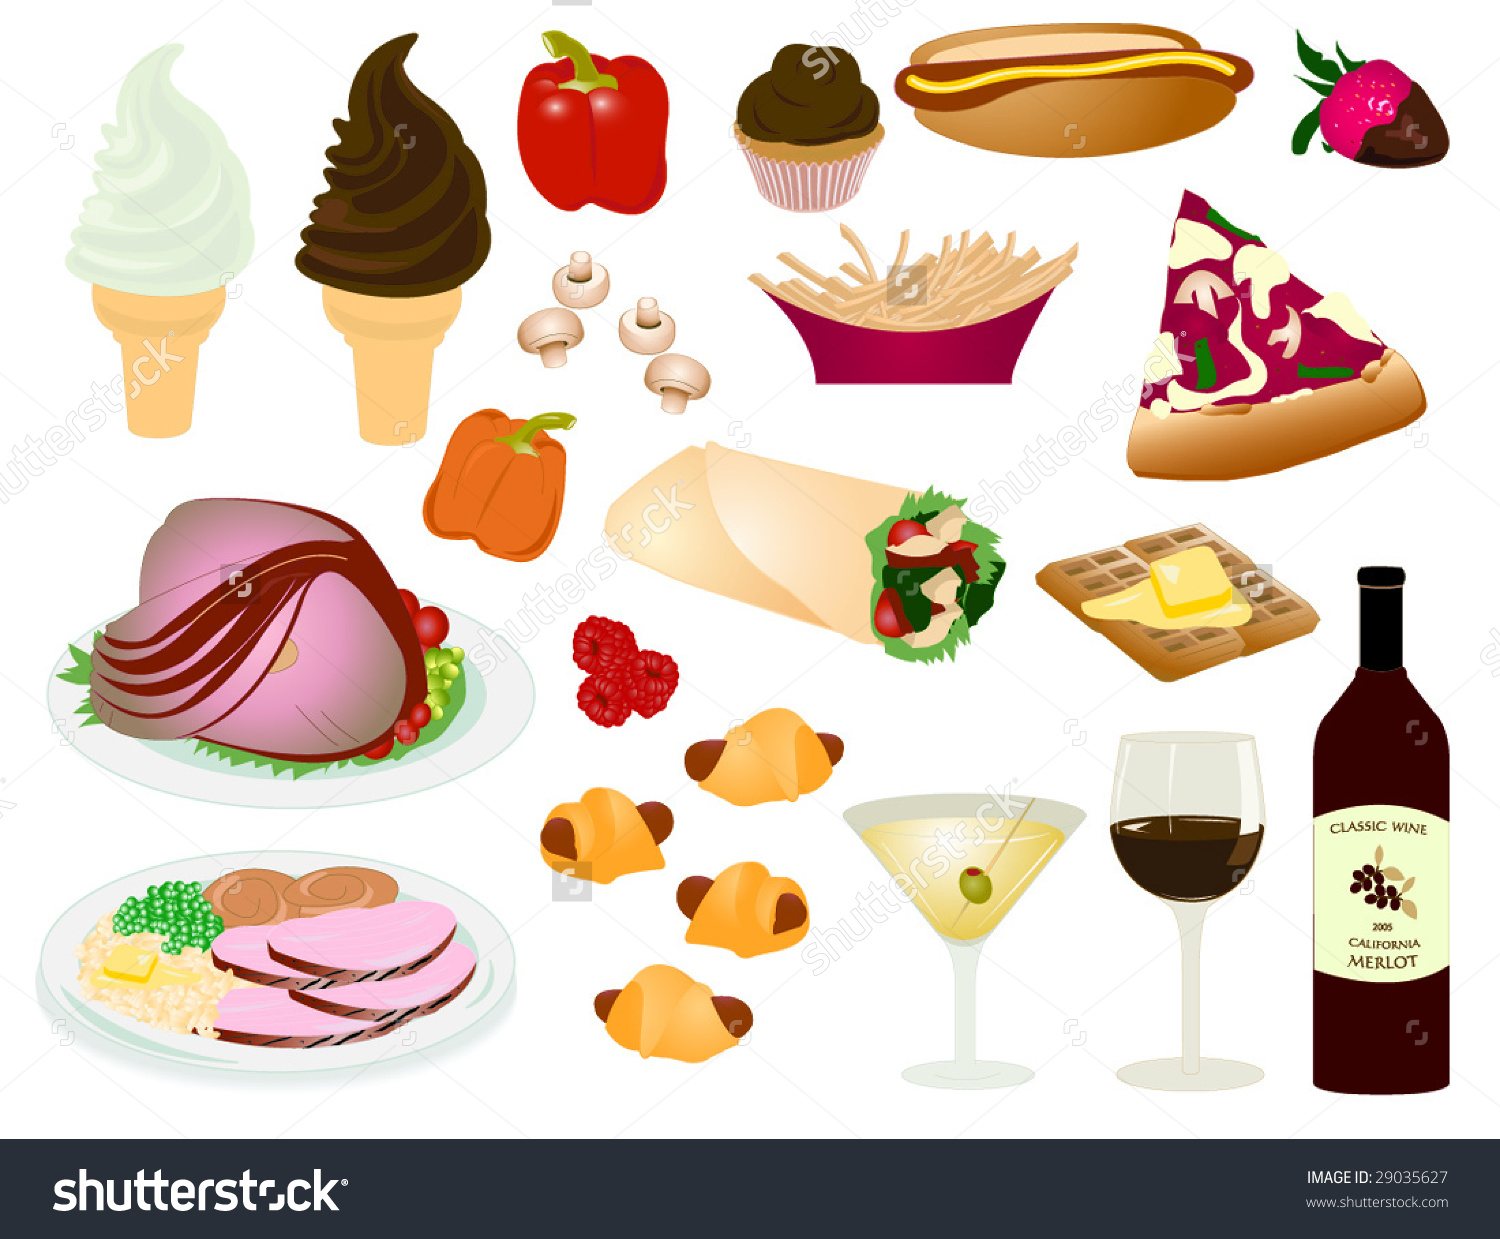 Clipart for food misc. Items stock vector shutterstock